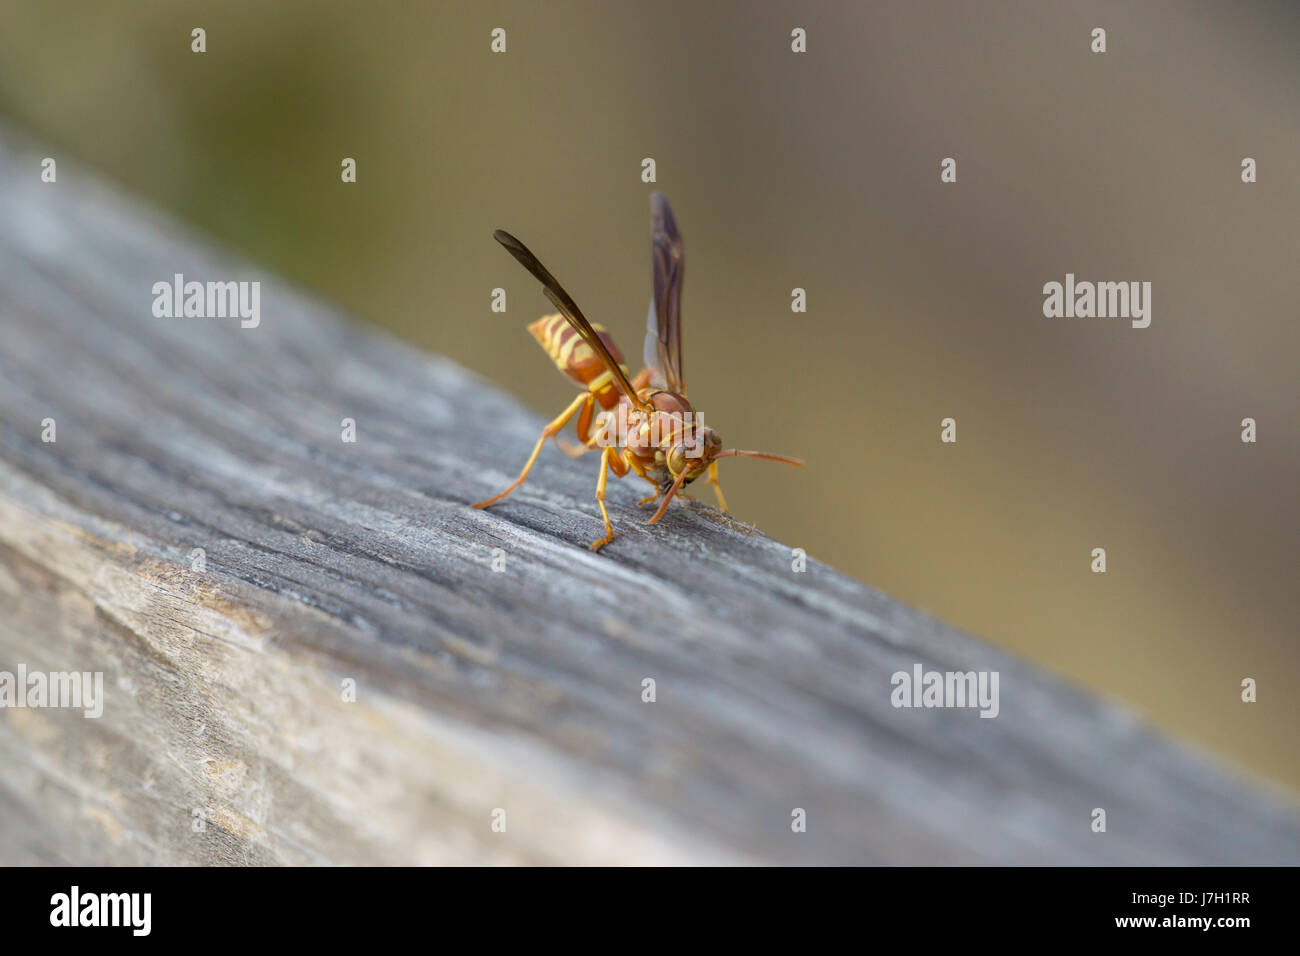 Wasp on wood Stock Photo